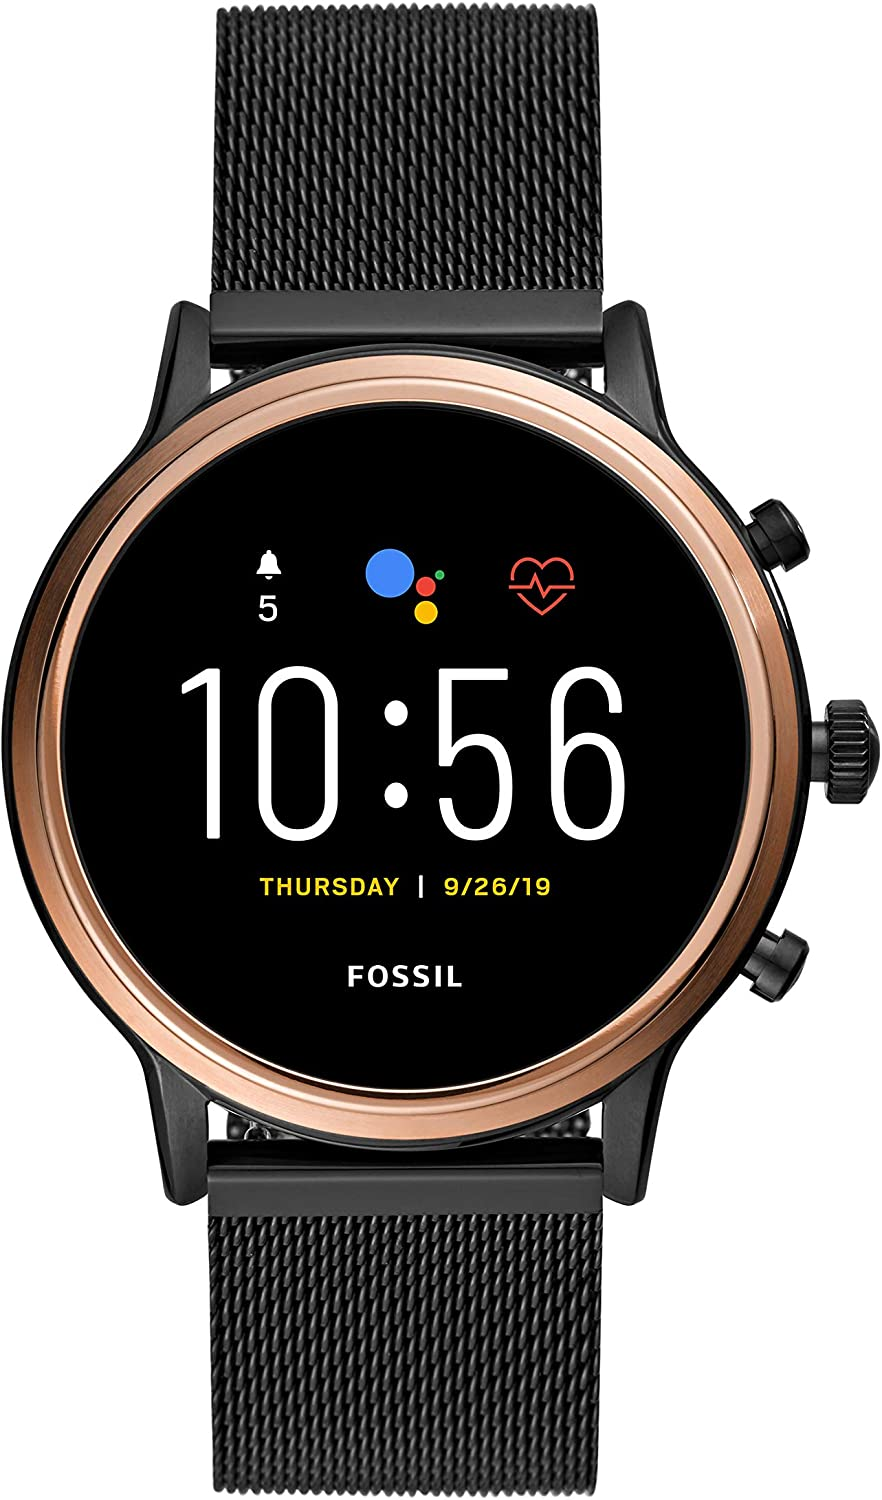 Amazon.com: Fossil Gen 5 Julianna Reloj inteligente con ...